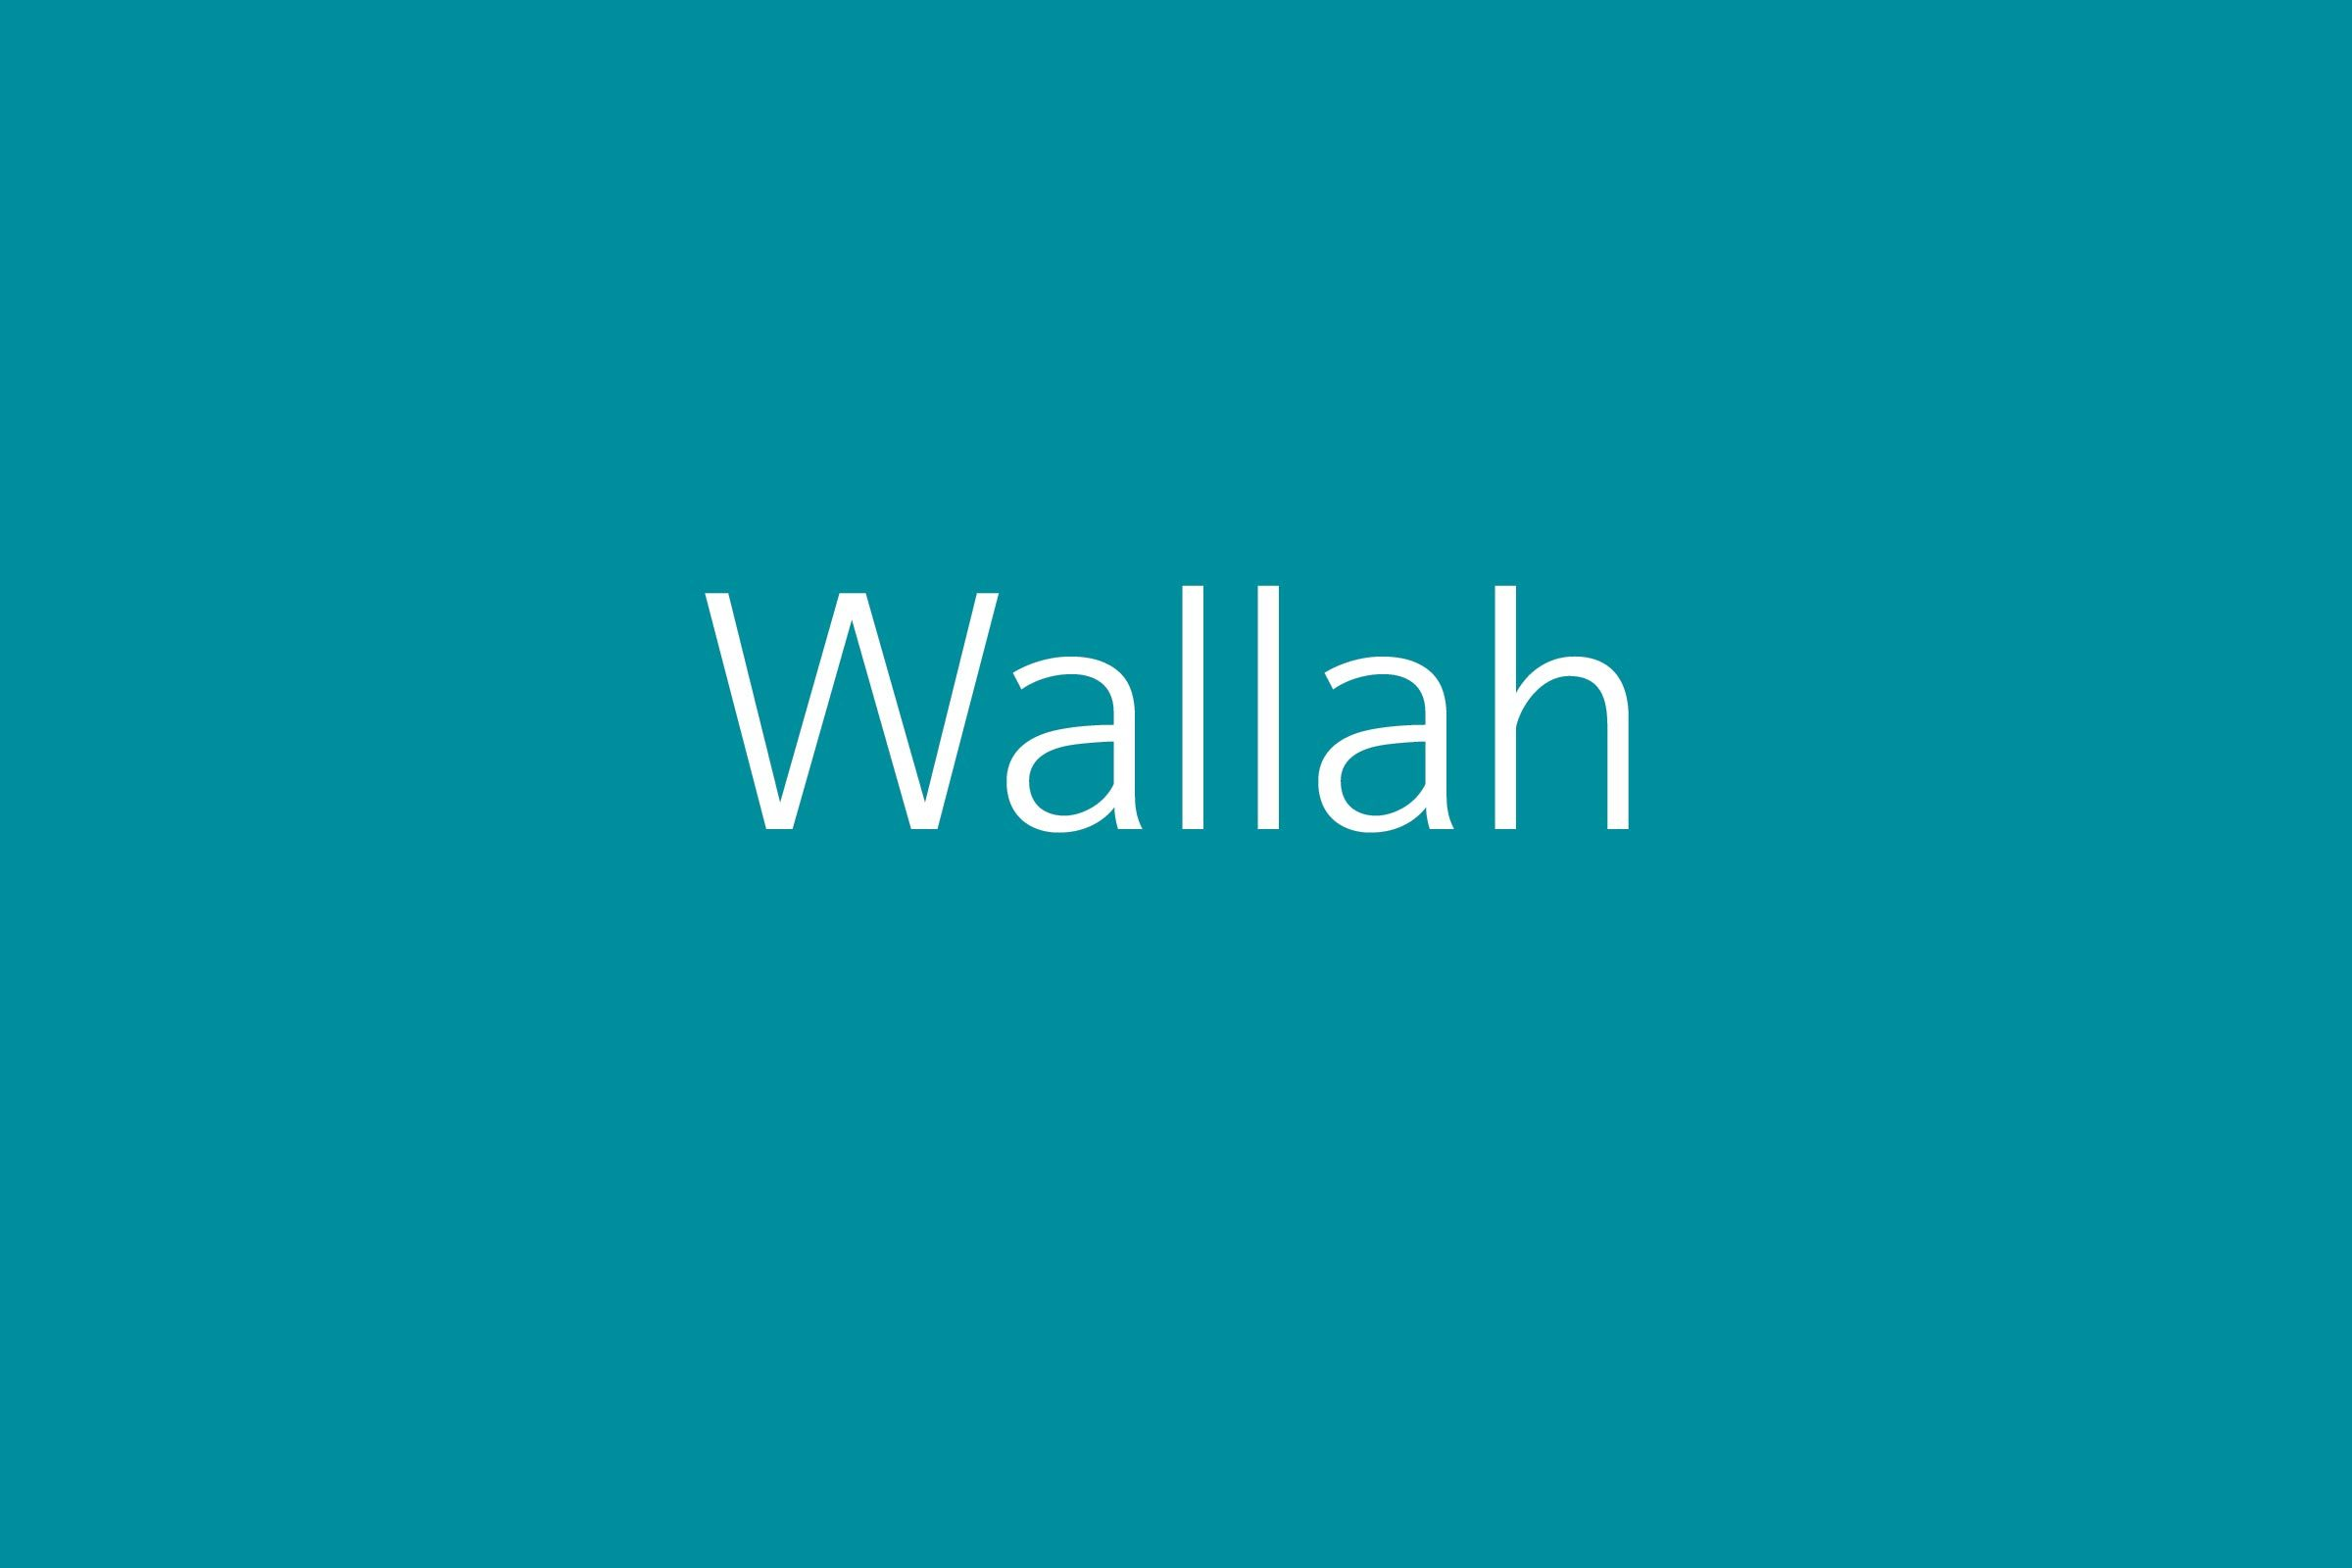 wallah funny word funny words to say